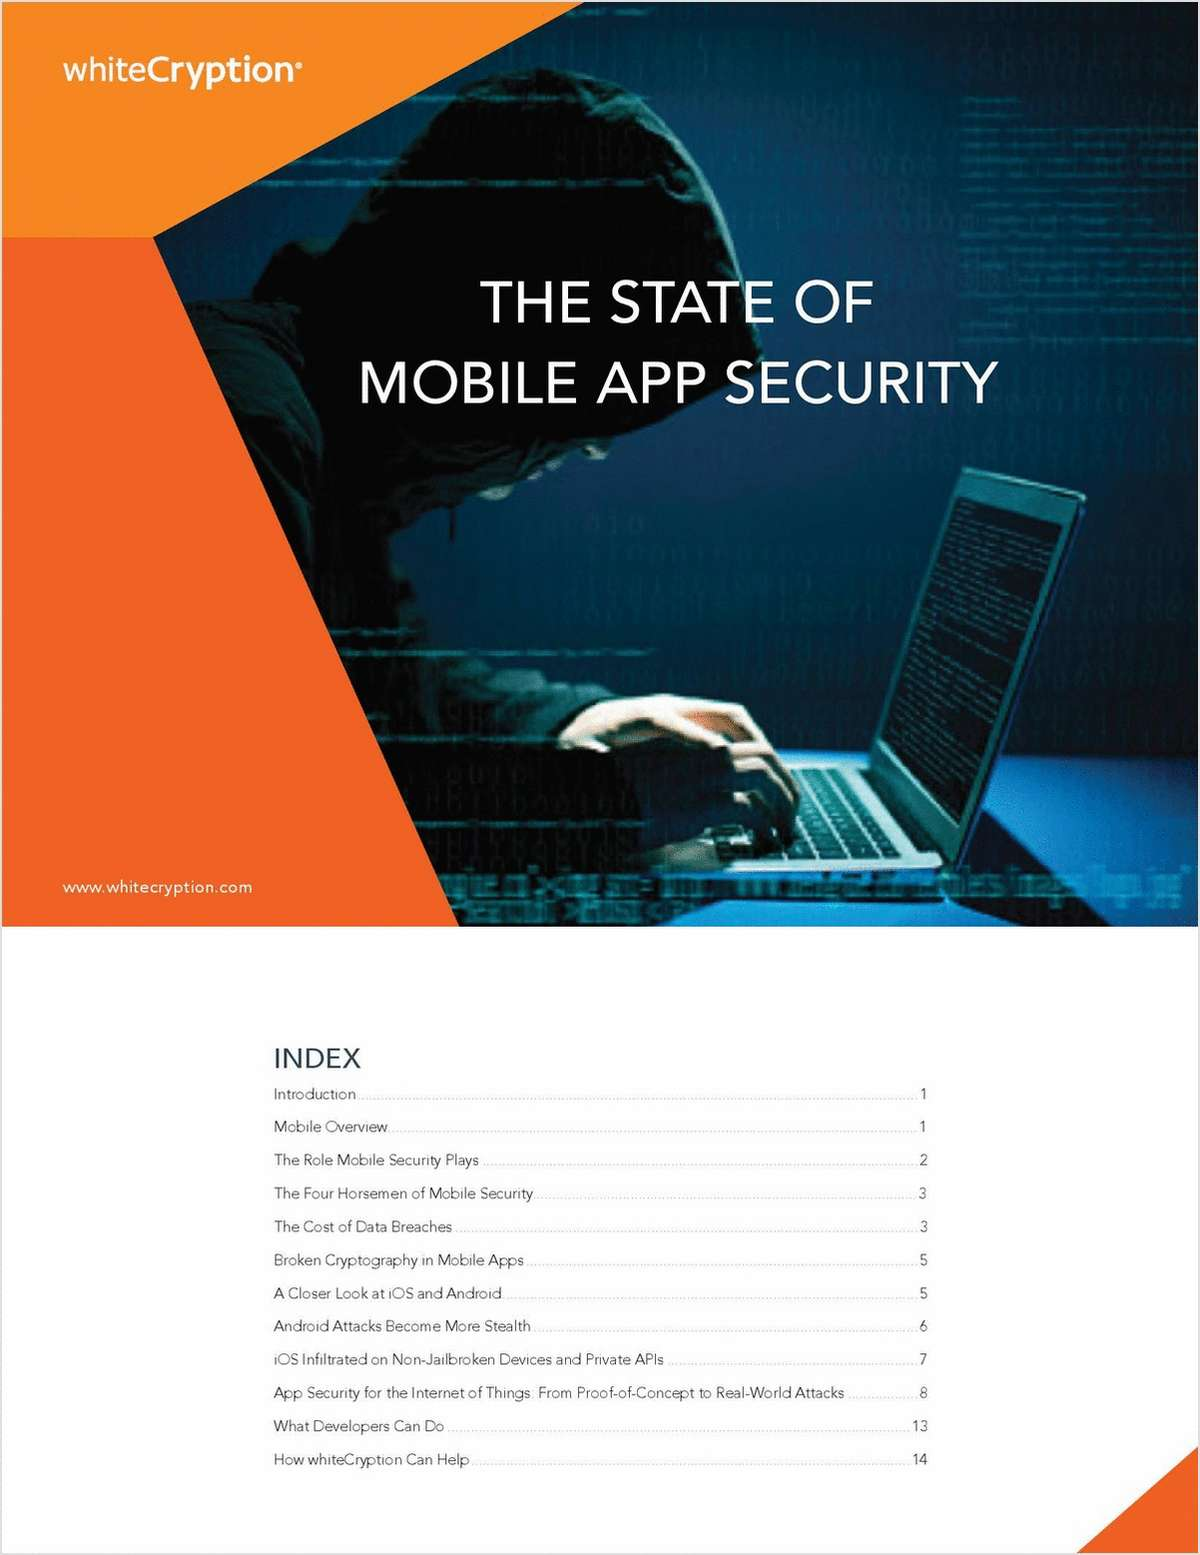 The State of Mobile App Security Report